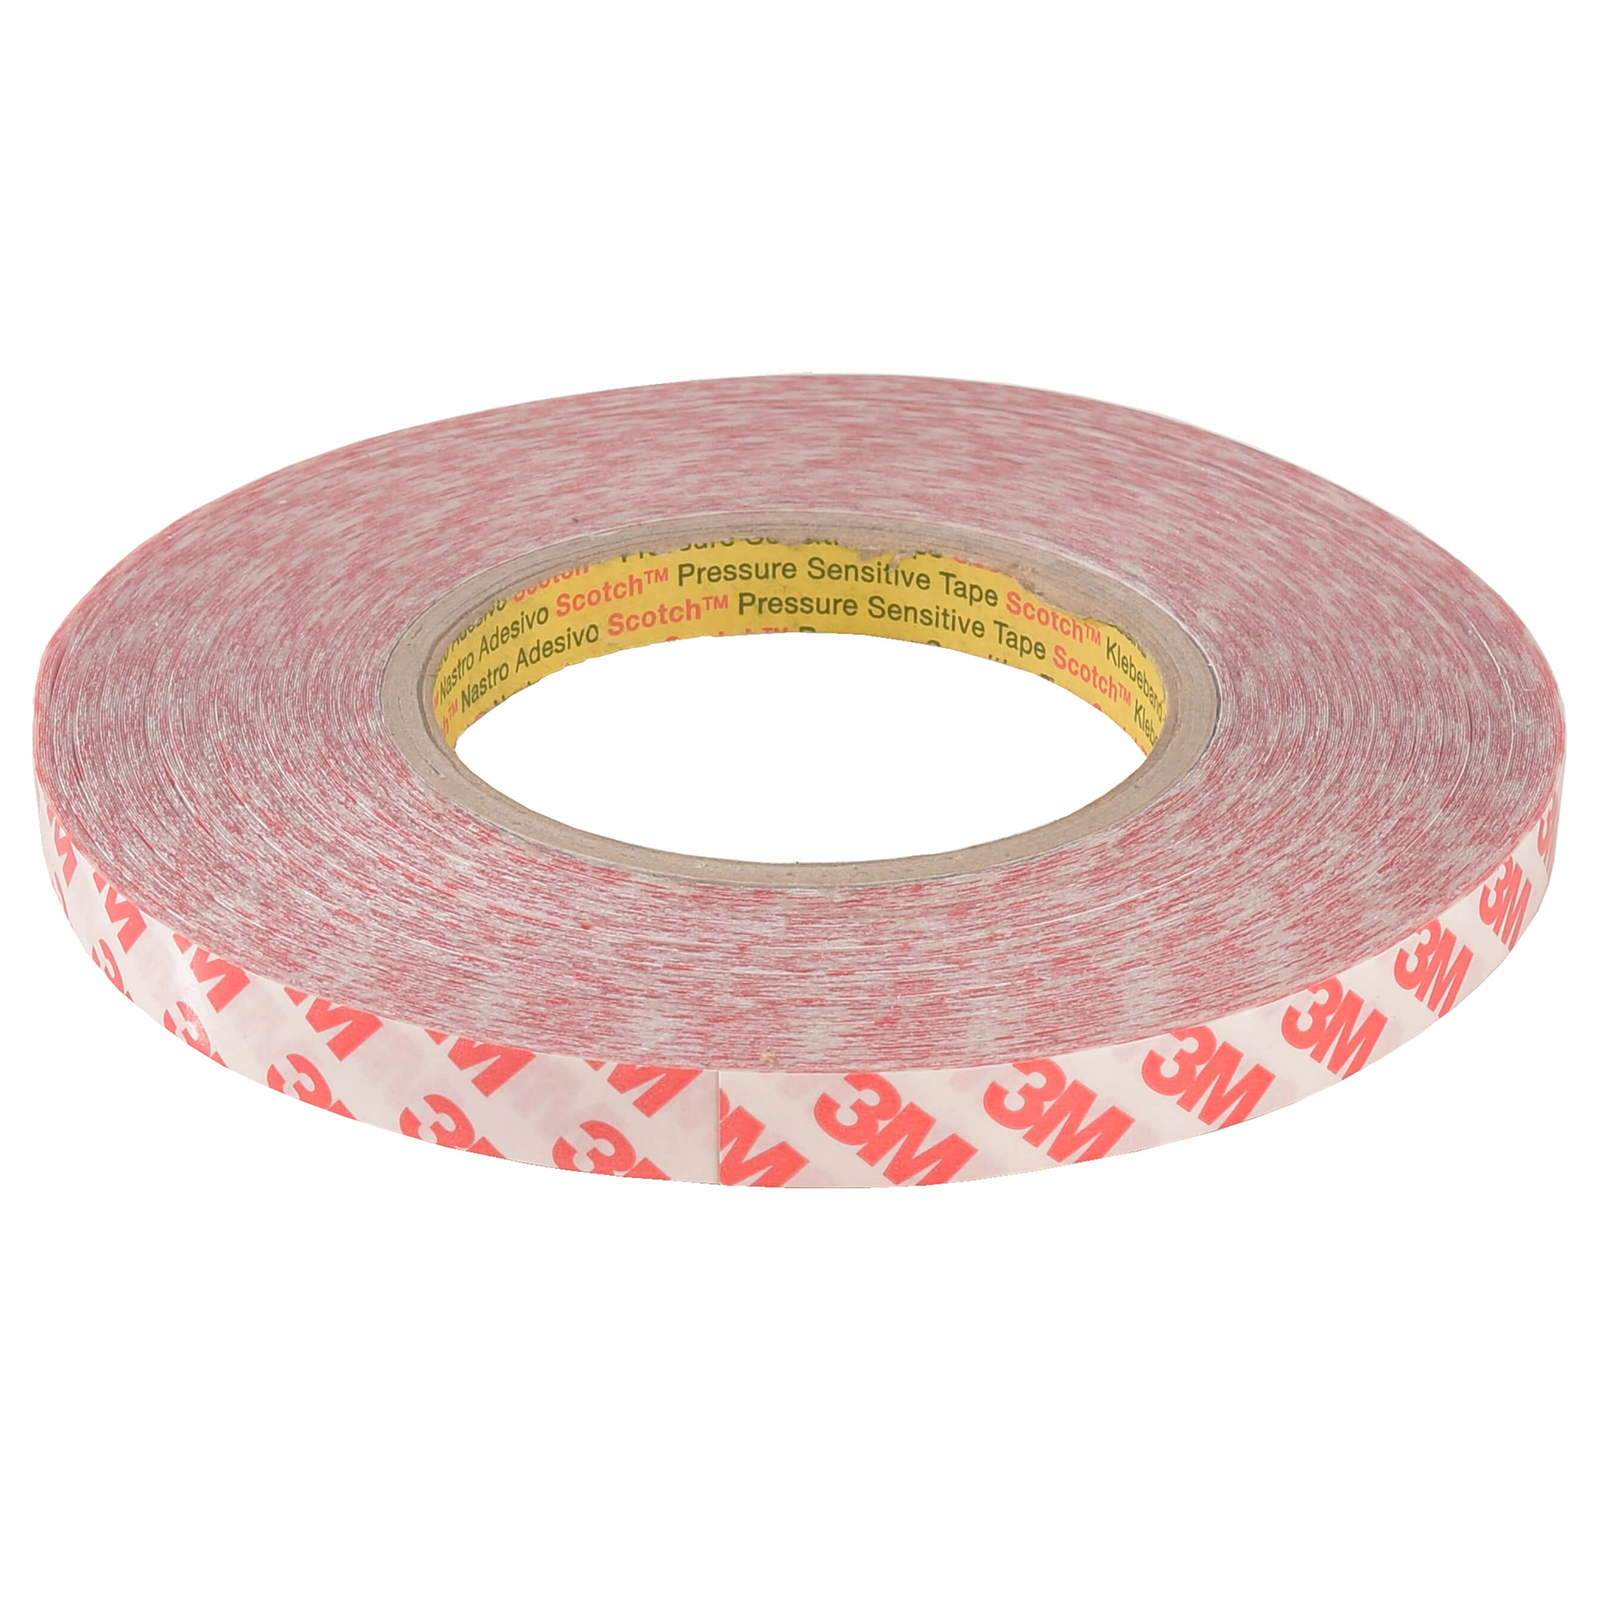 Coil adhesive double-sided tape 3M 50 meters profiles-resistant LED strips 10mm